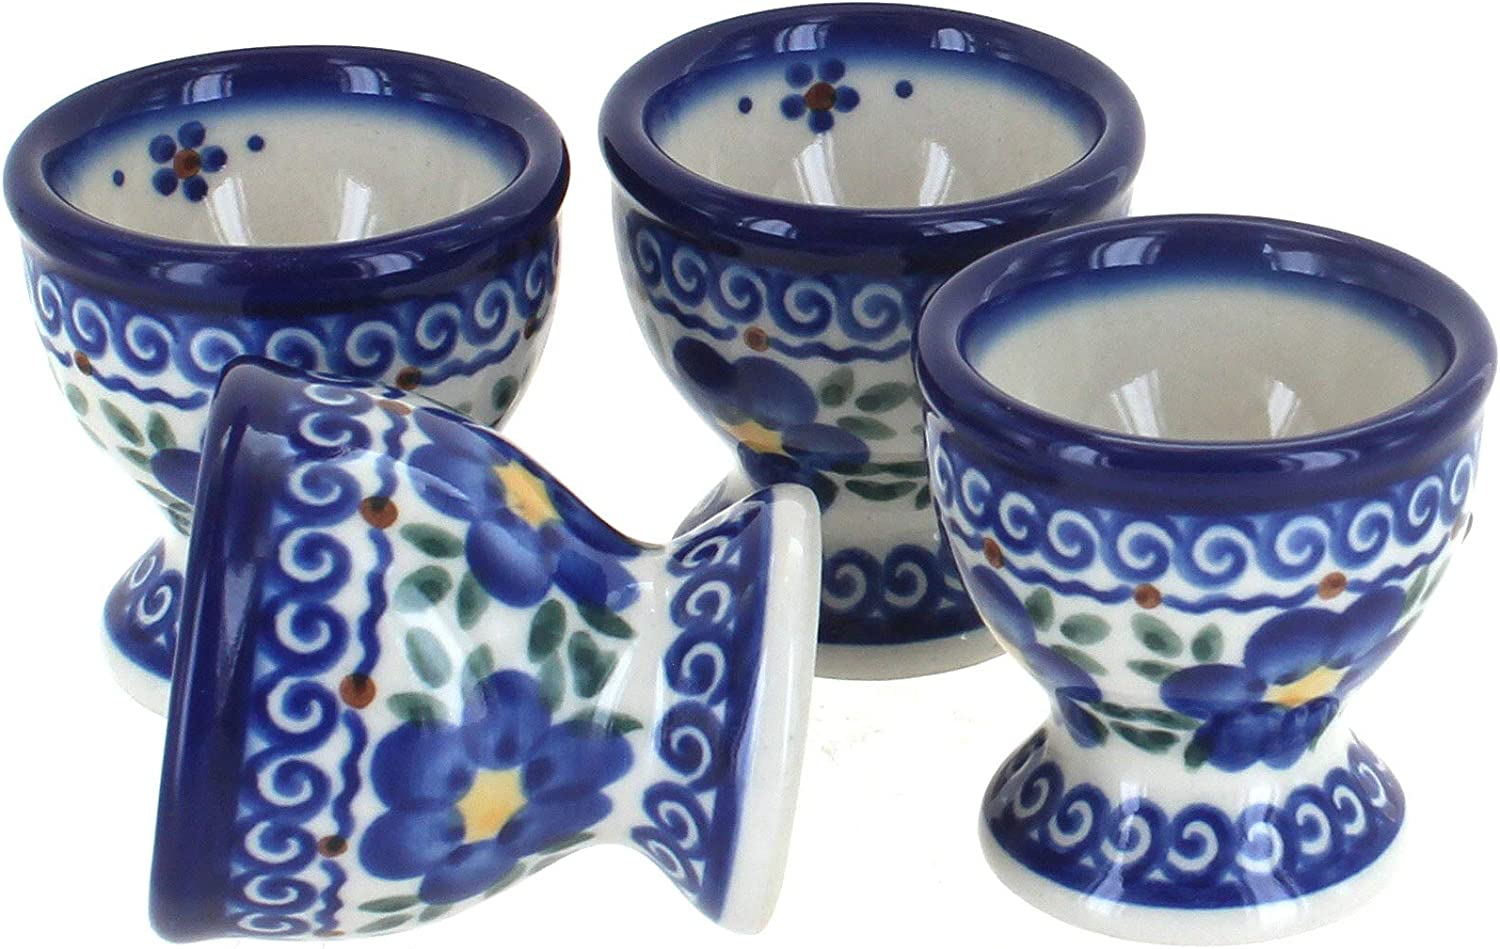 Blue Rose Polish Beauty products Pottery Spring Max 54% OFF Blossom PC Egg Set Cup 4